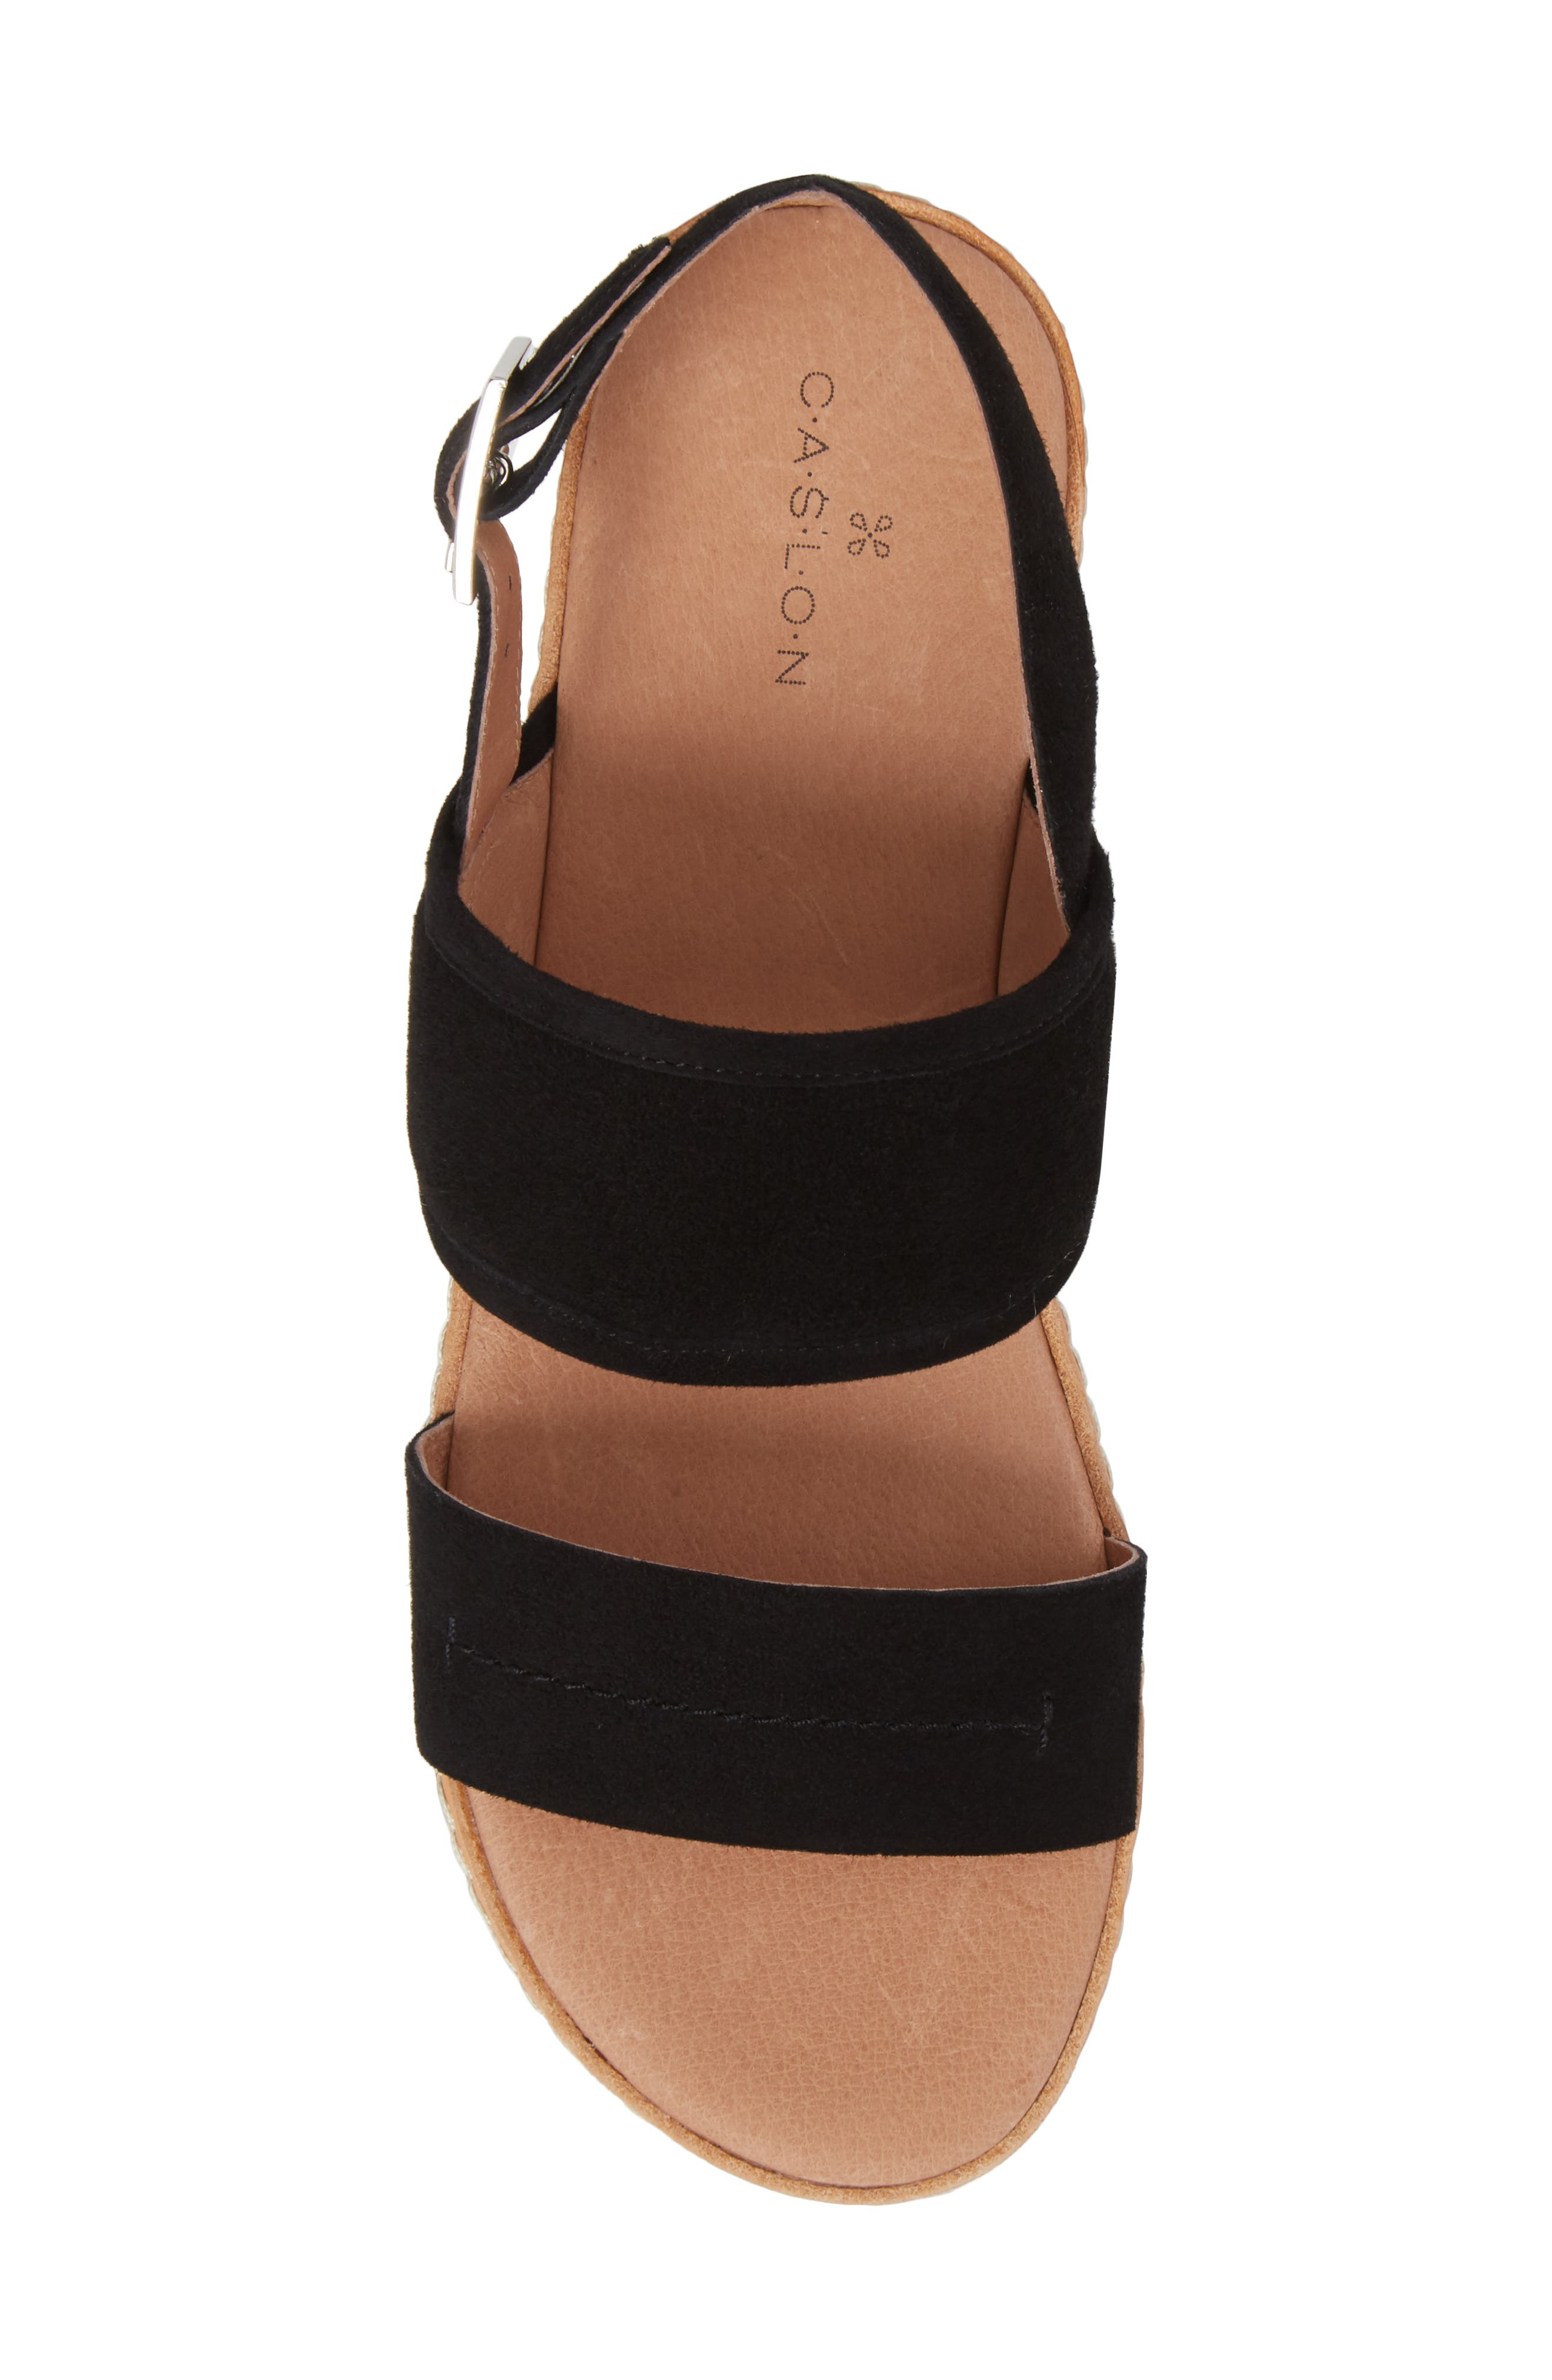 Claire Slingback Sandal,                             Alternate thumbnail 5, color,                             001